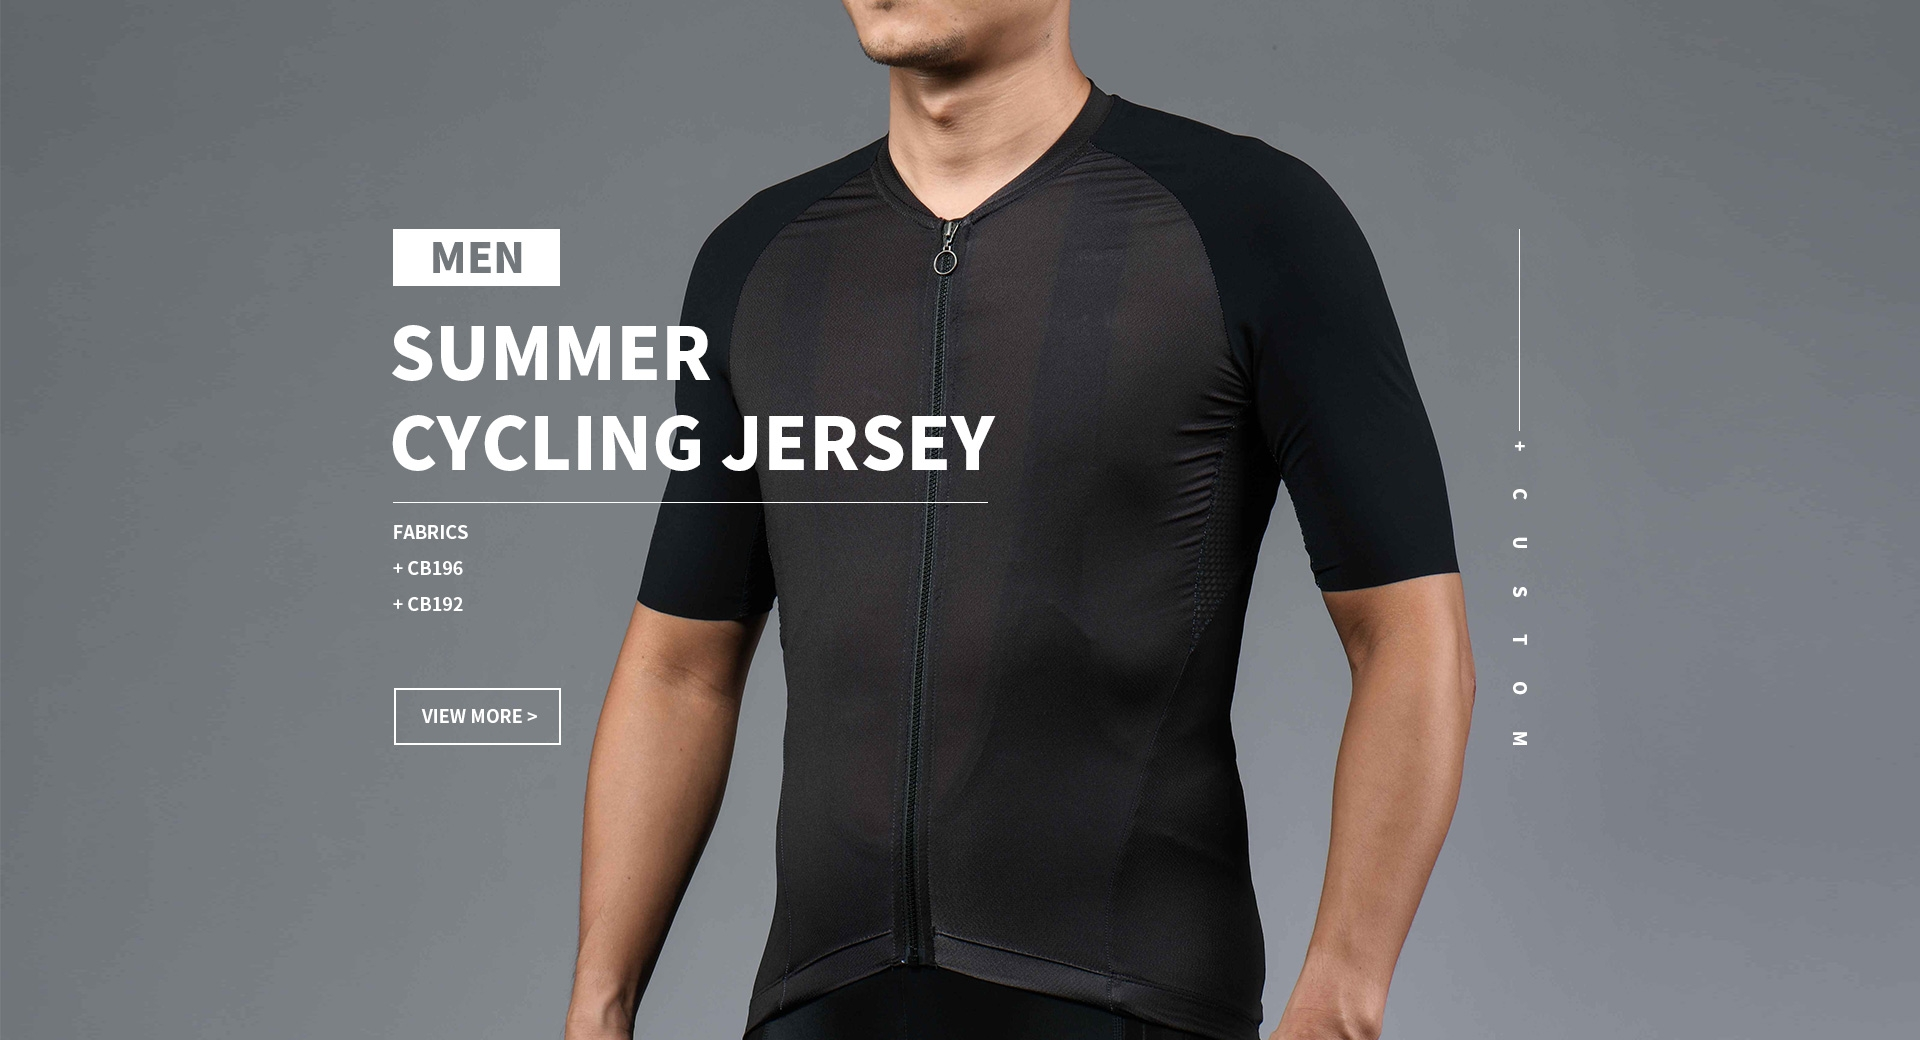 Custom Cycling Clothing White Label Bike Wear - China Factory. Home  brand.  magicslider 63c1d7ce5